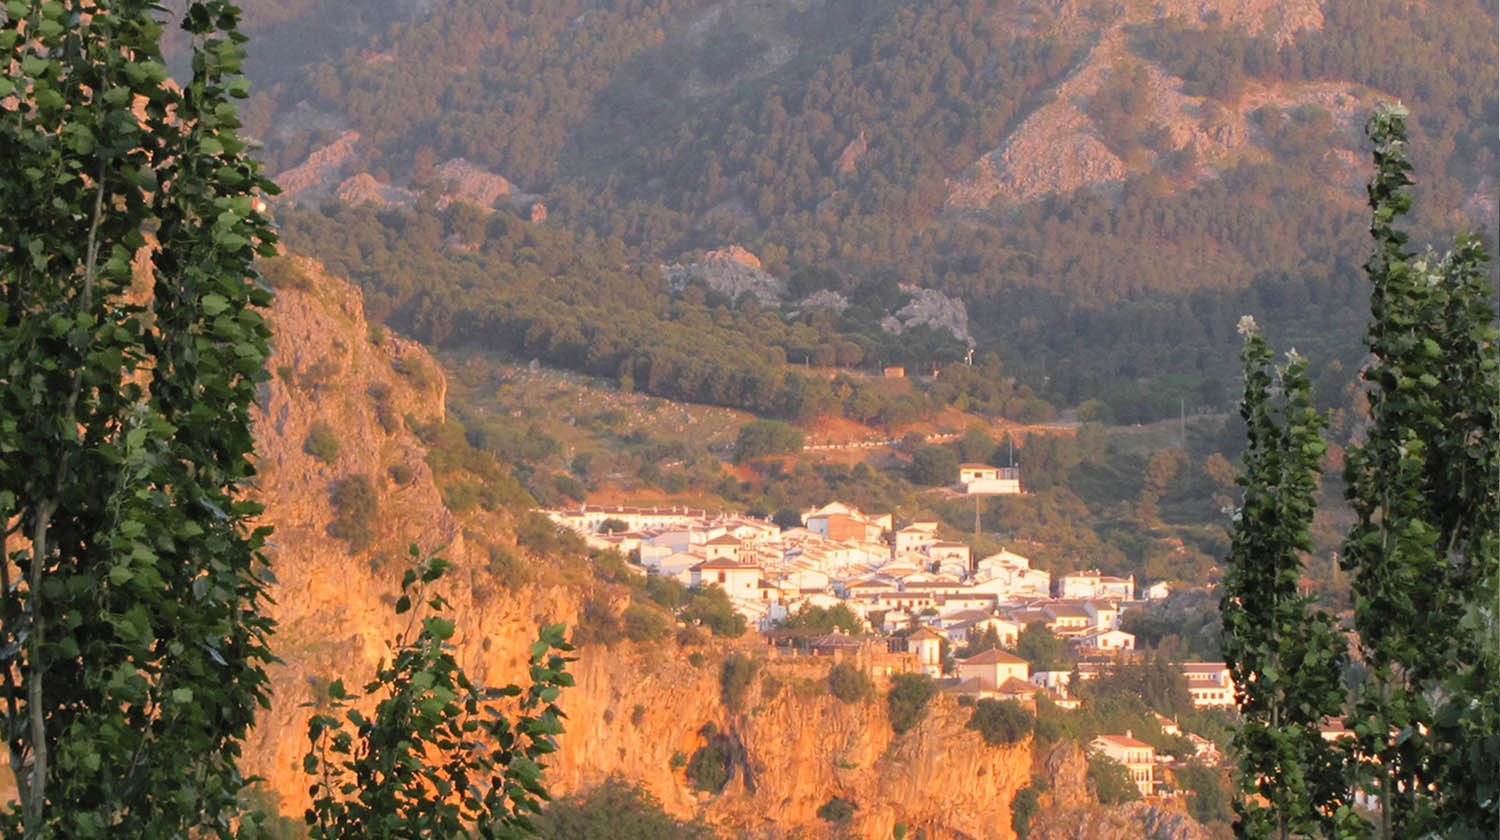 The village of Grazalema at sunrise